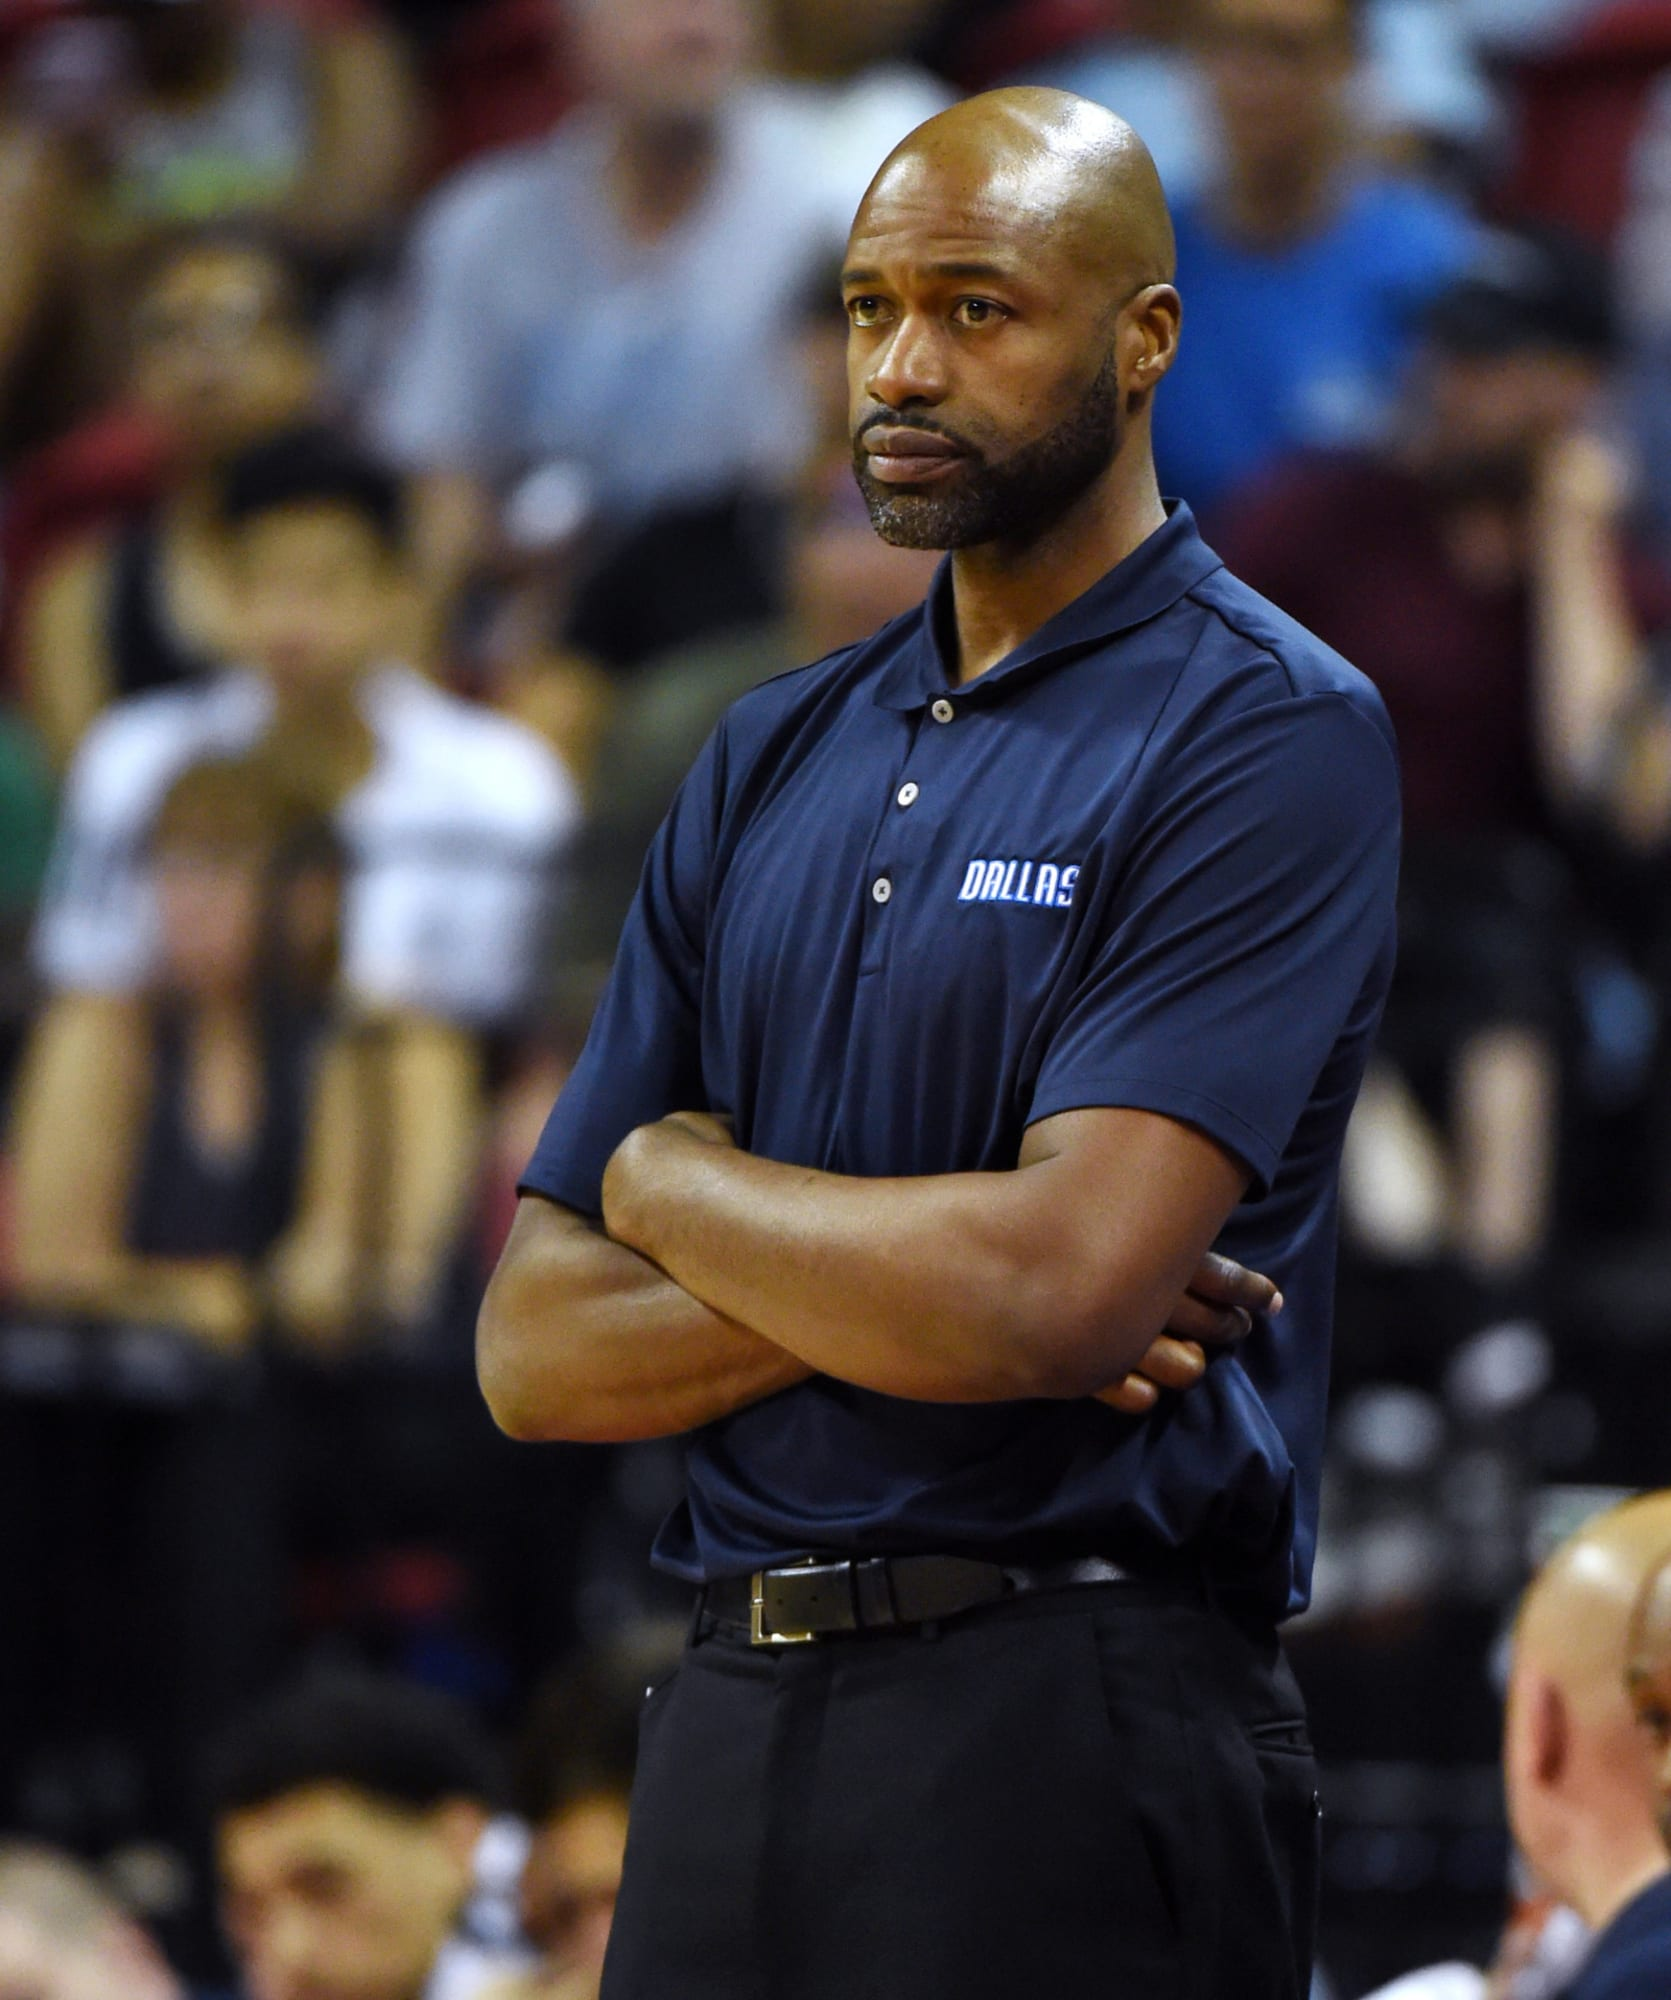 New York Knicks: Dallas assistant Jamahl Mosley set to interview for head coach job